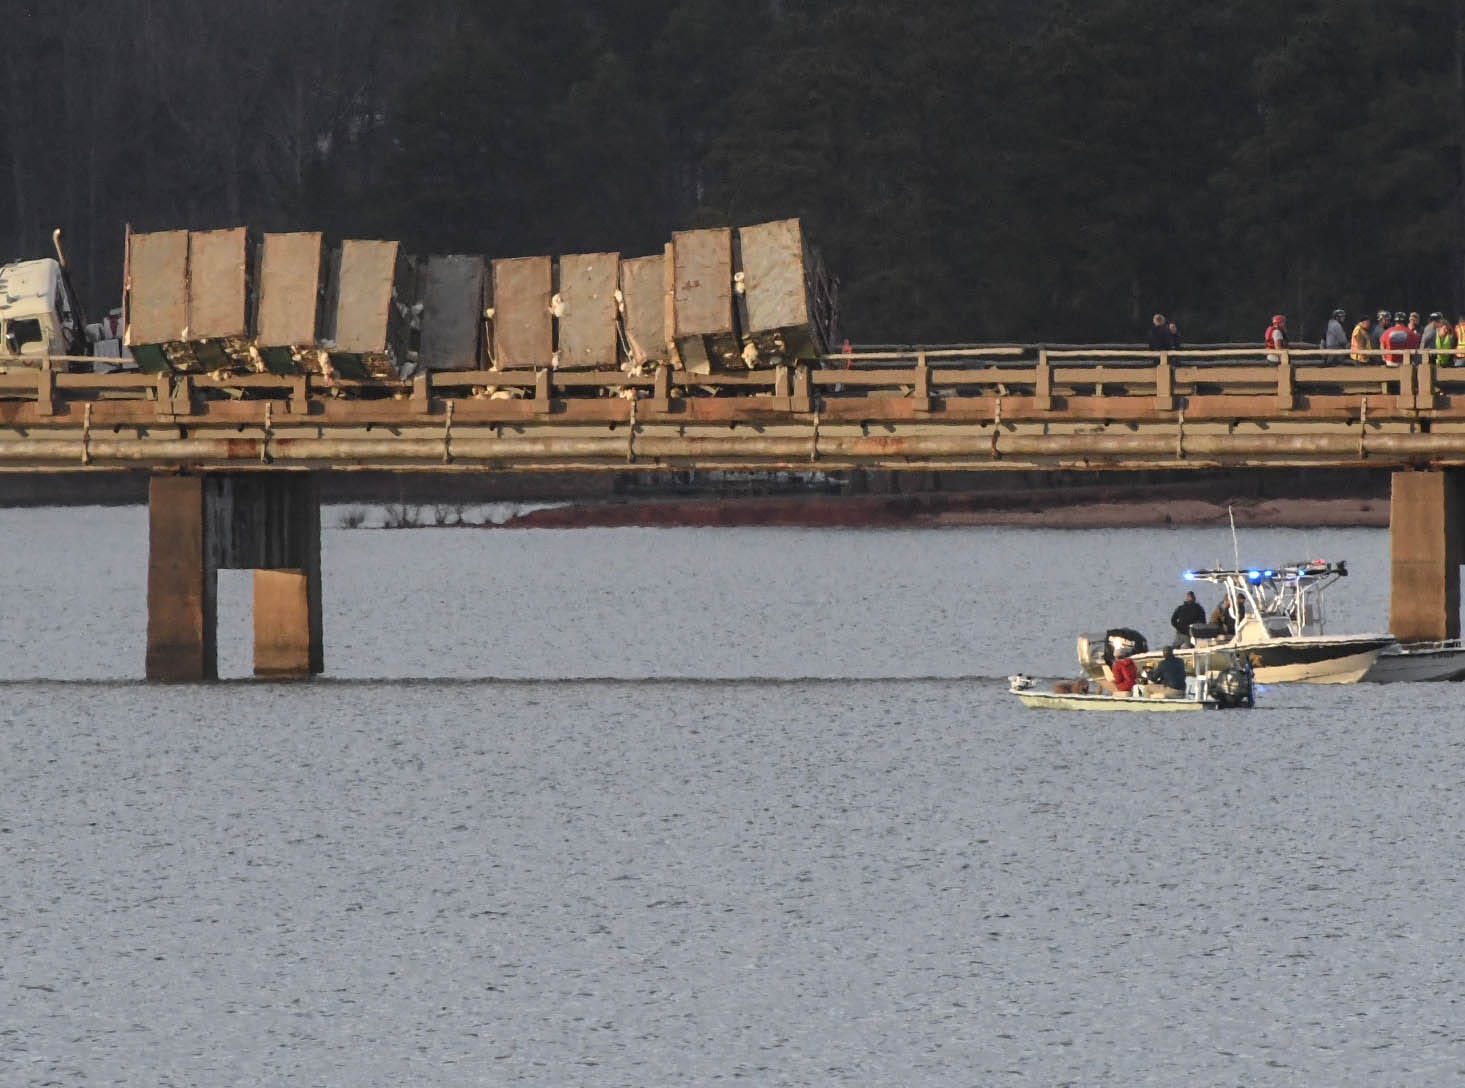 Emergency workers look at damage from an accident with a tractor-trailer with cages of chickens and a sedan on a bridge over Lake Hartwell on state highway 24 in Anderson Monday evening. One person died after the Ford Taurus collided with an tractor-trailer.